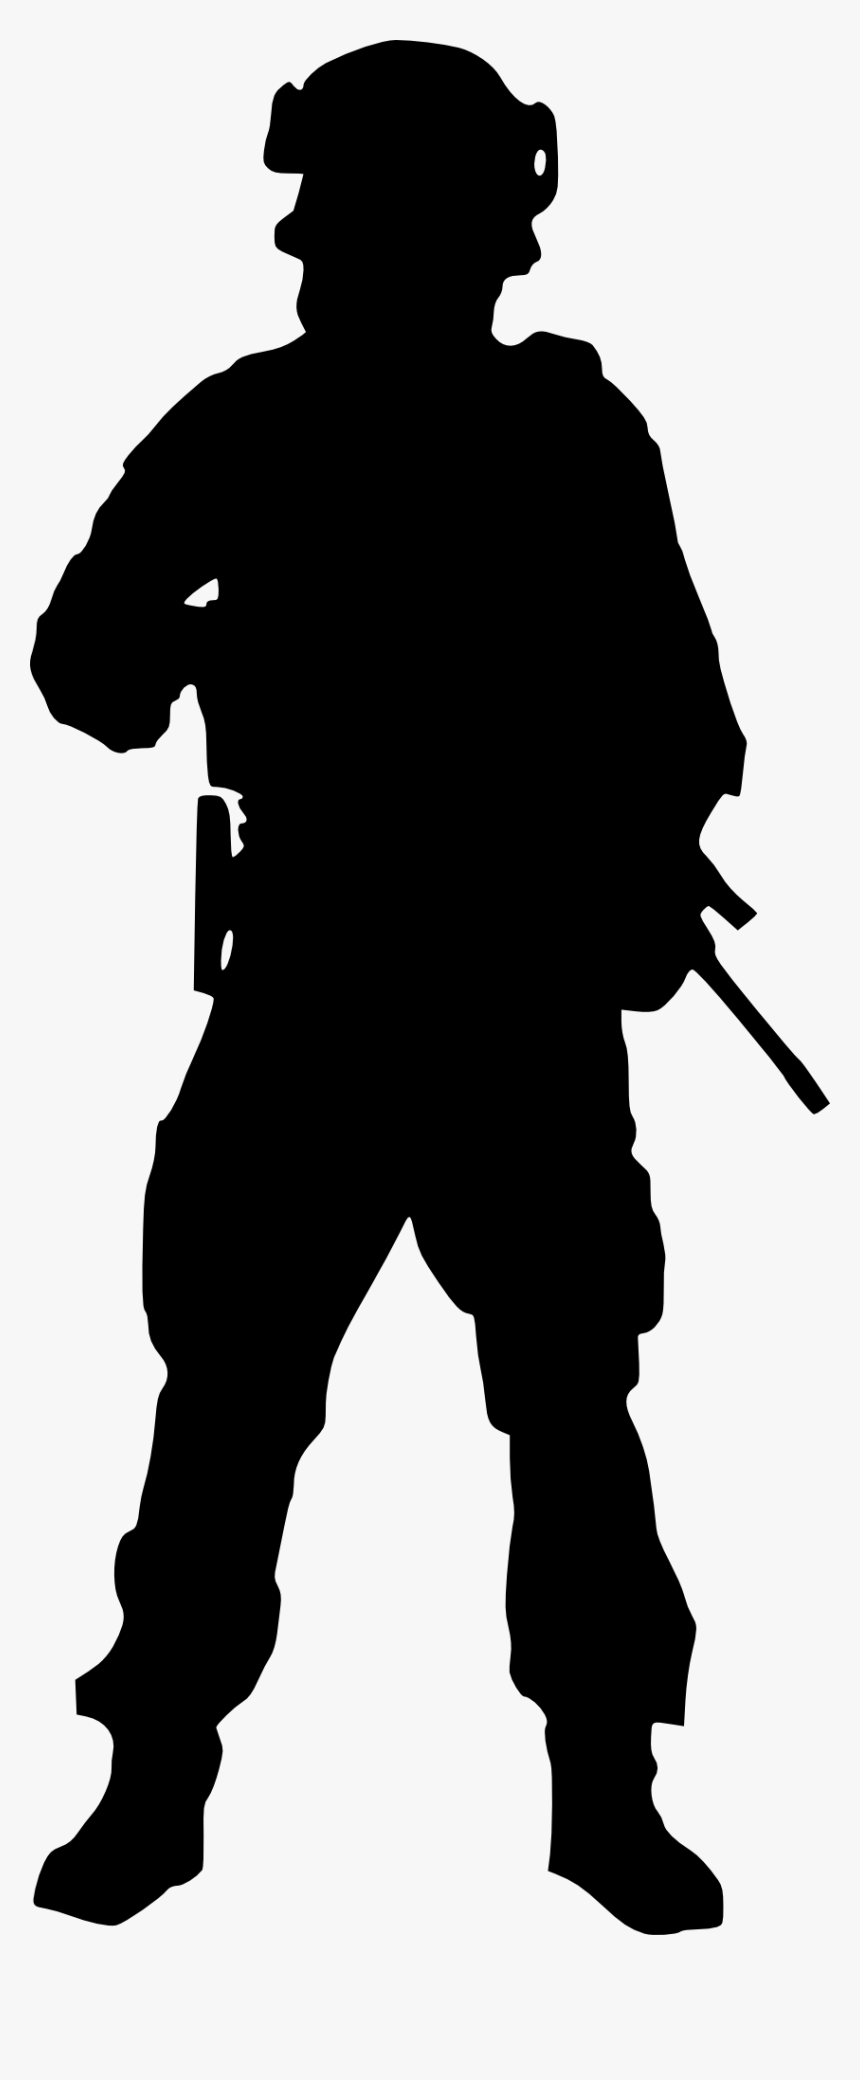 Army clipart military, Picture #53930 army clipart military